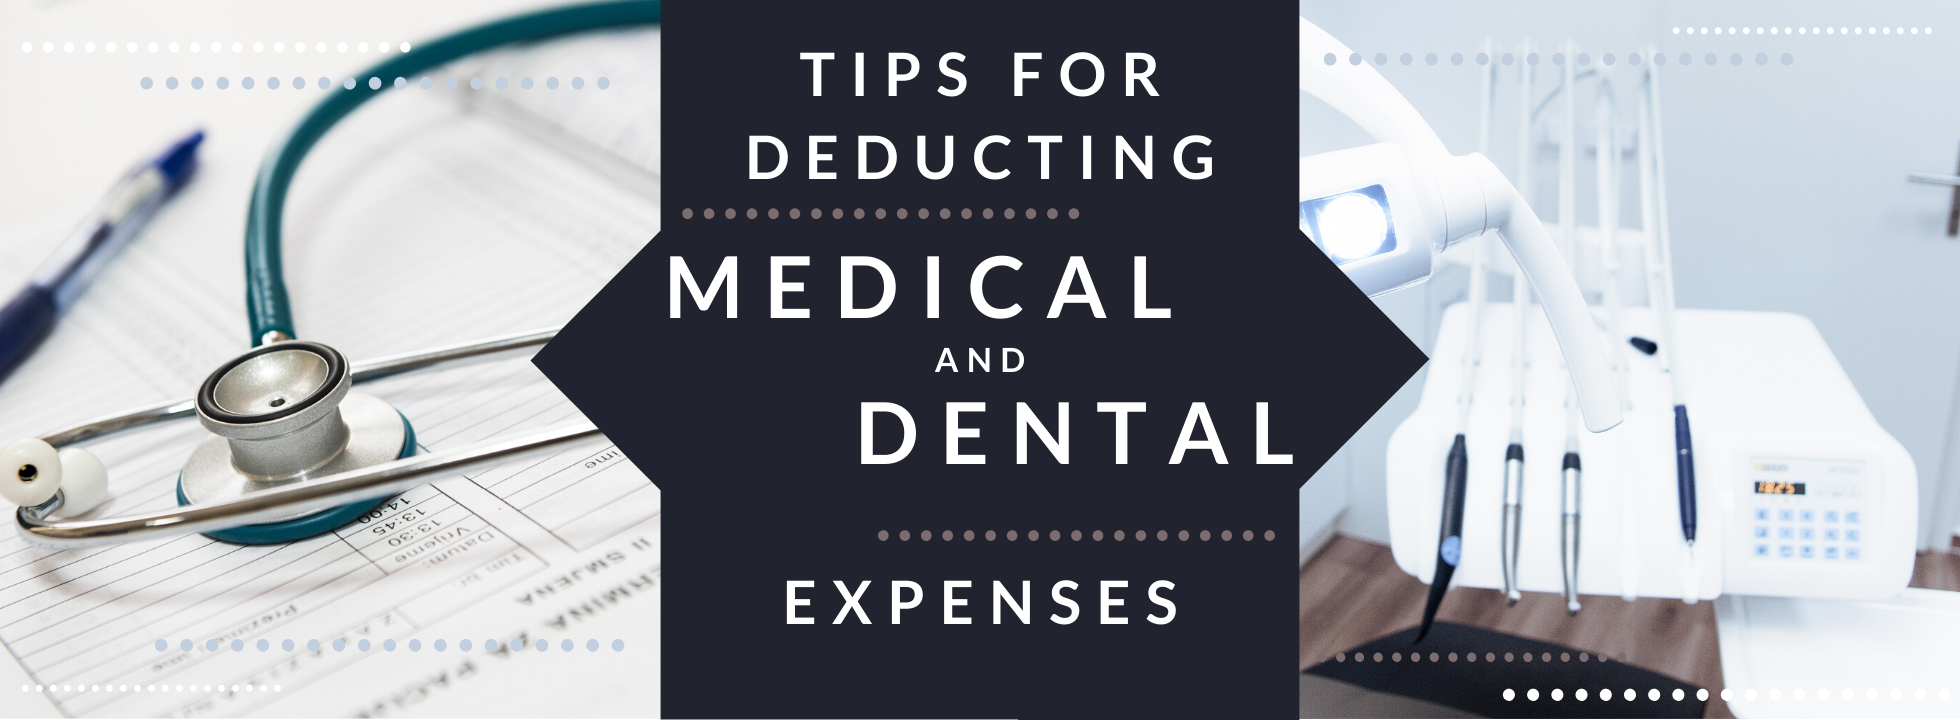 Tips For Deducting